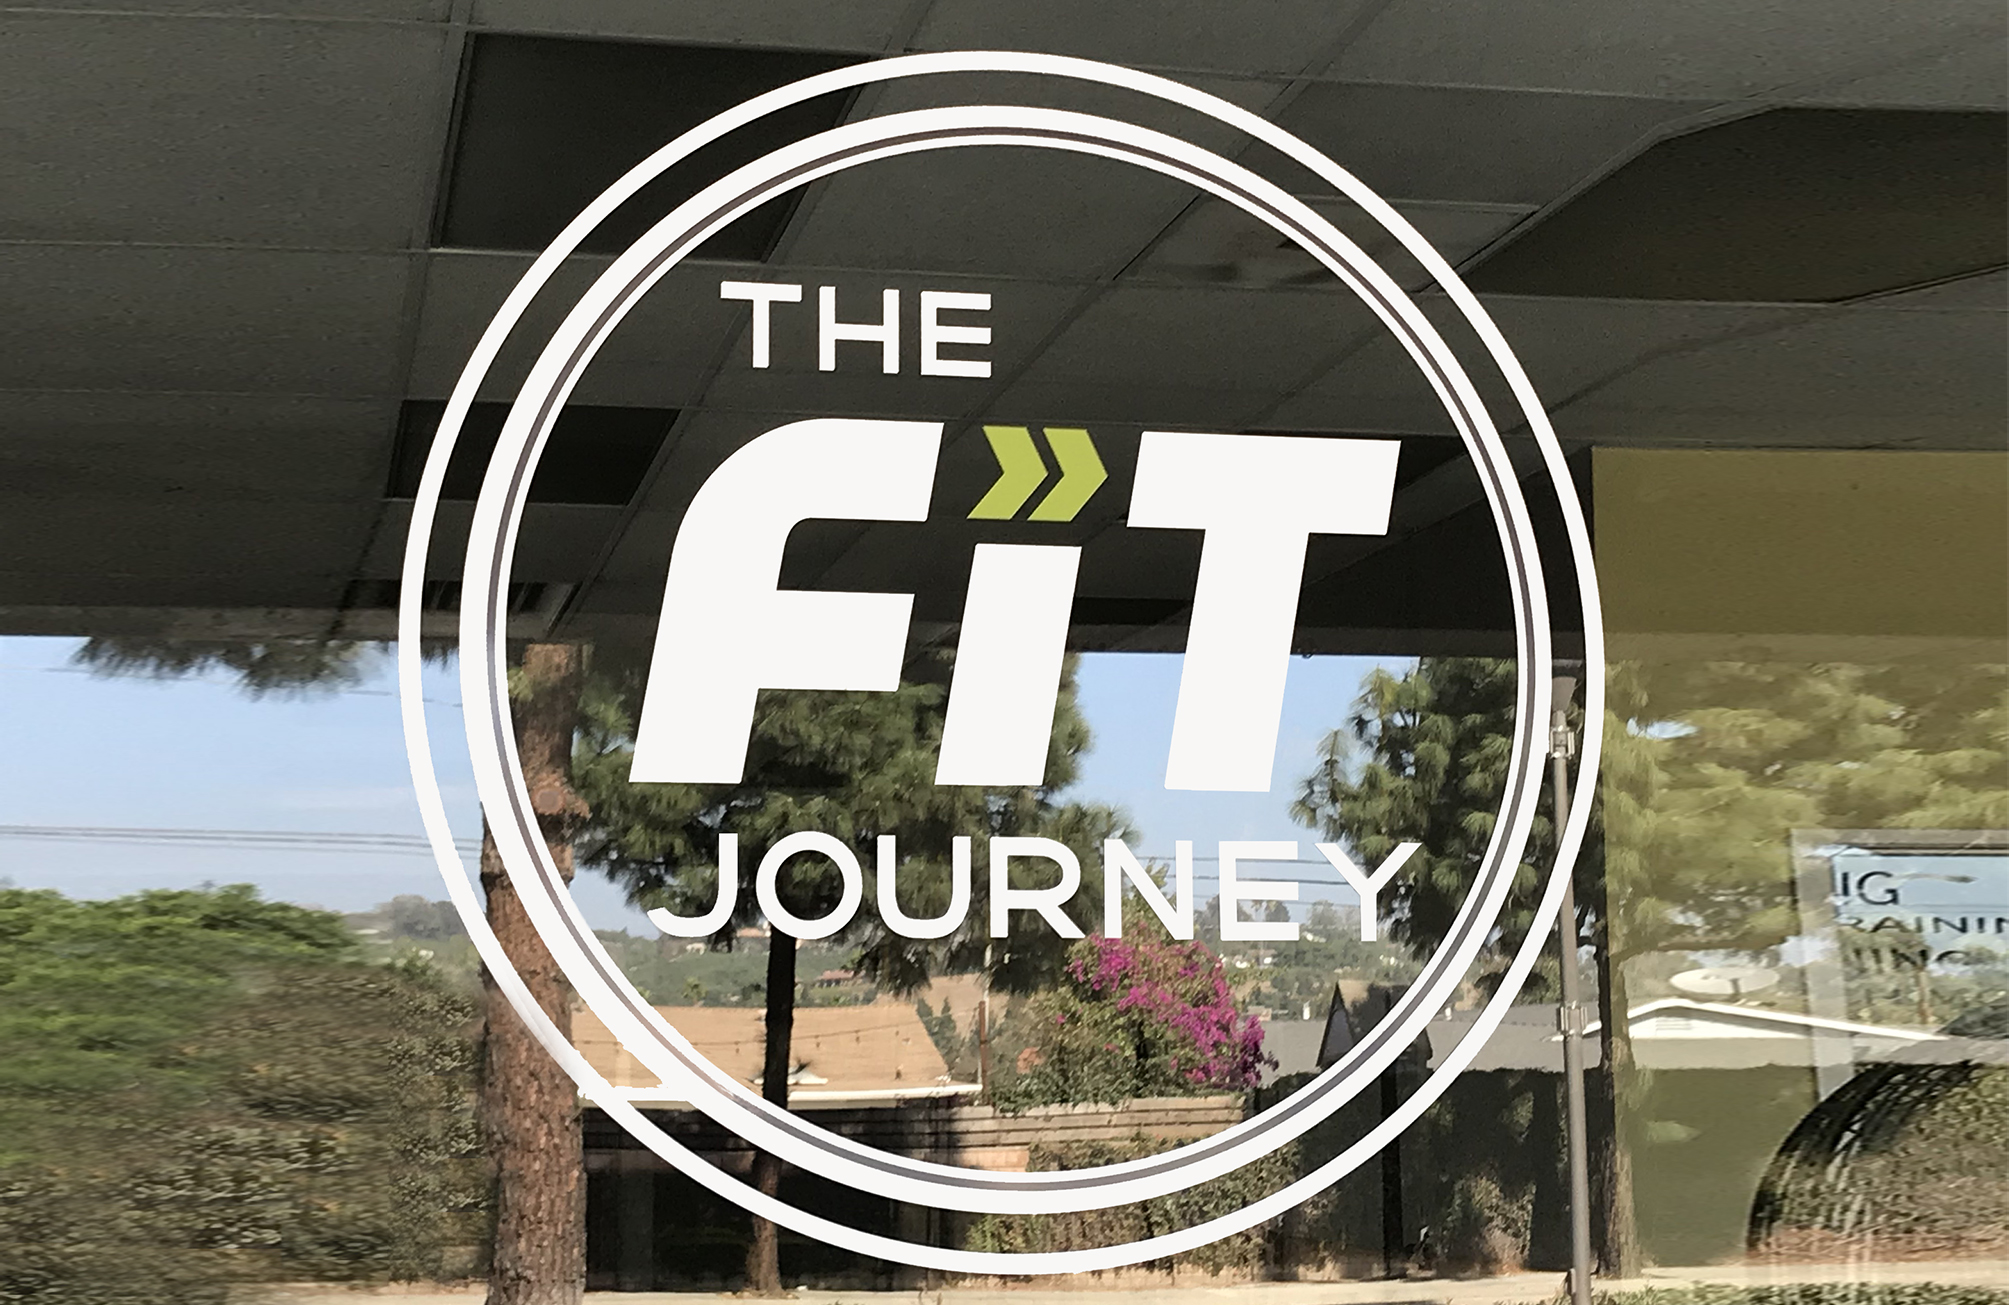 The Fit Journey Studio